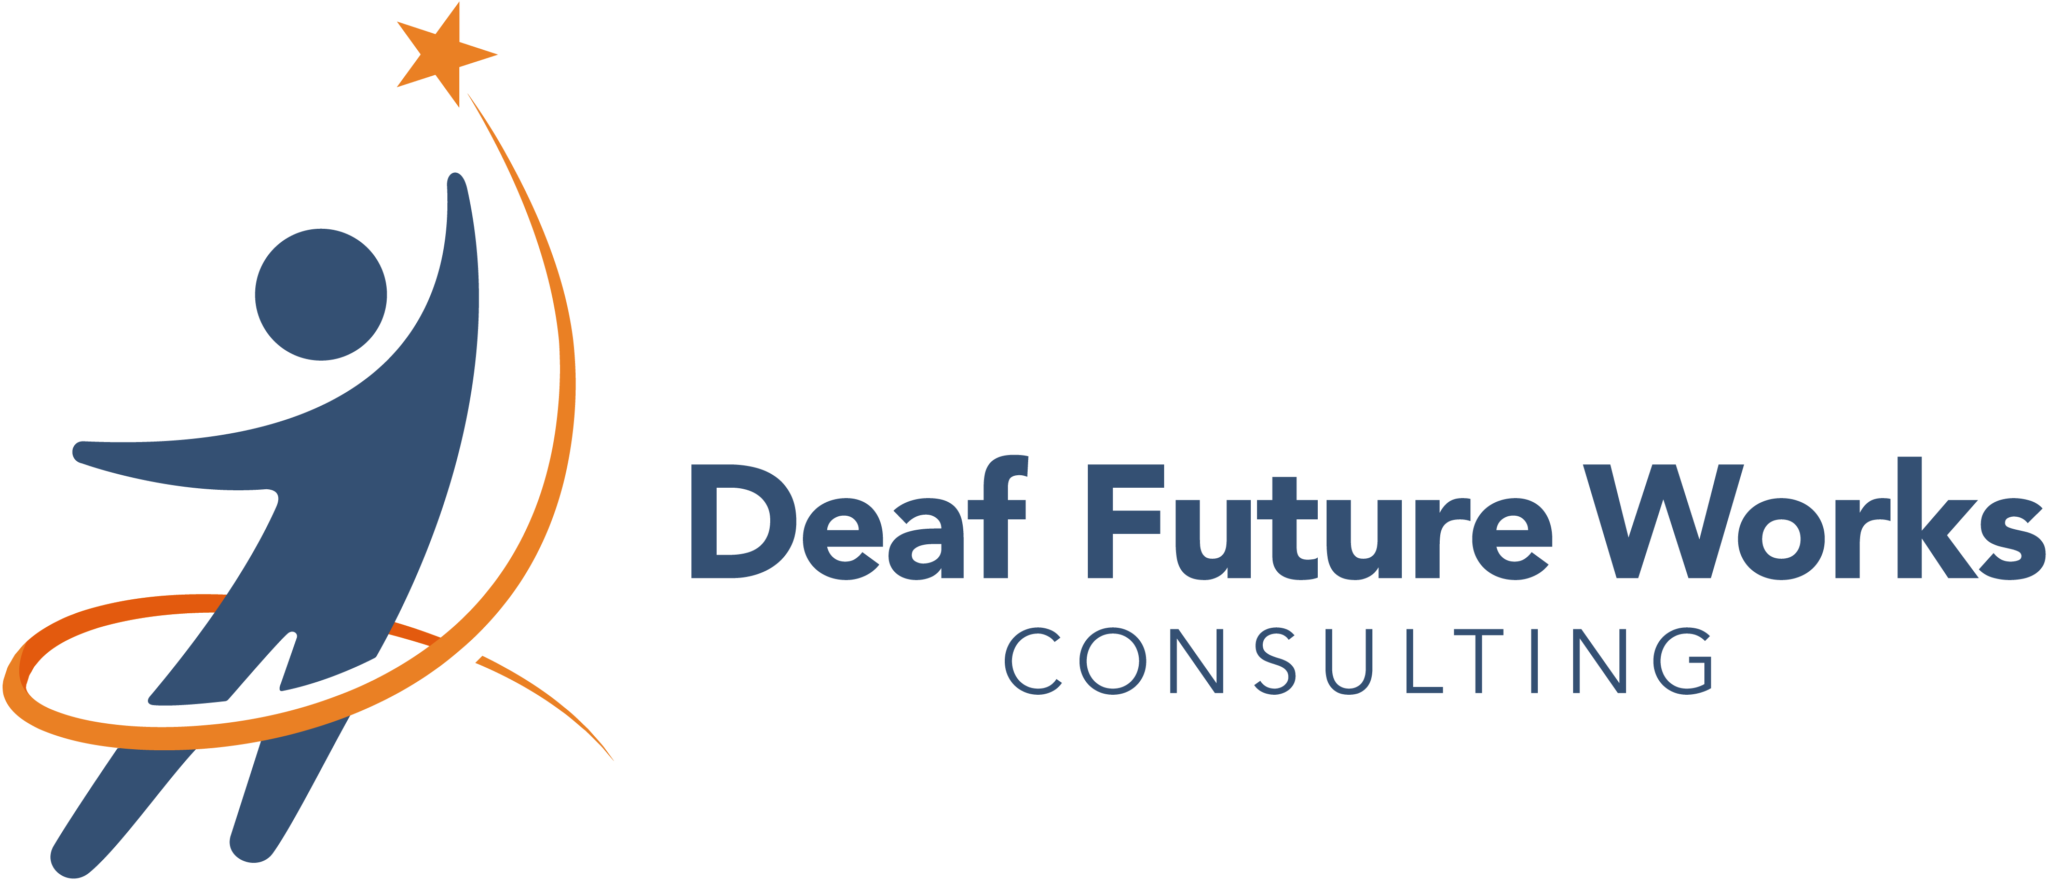 Deaf Future Works